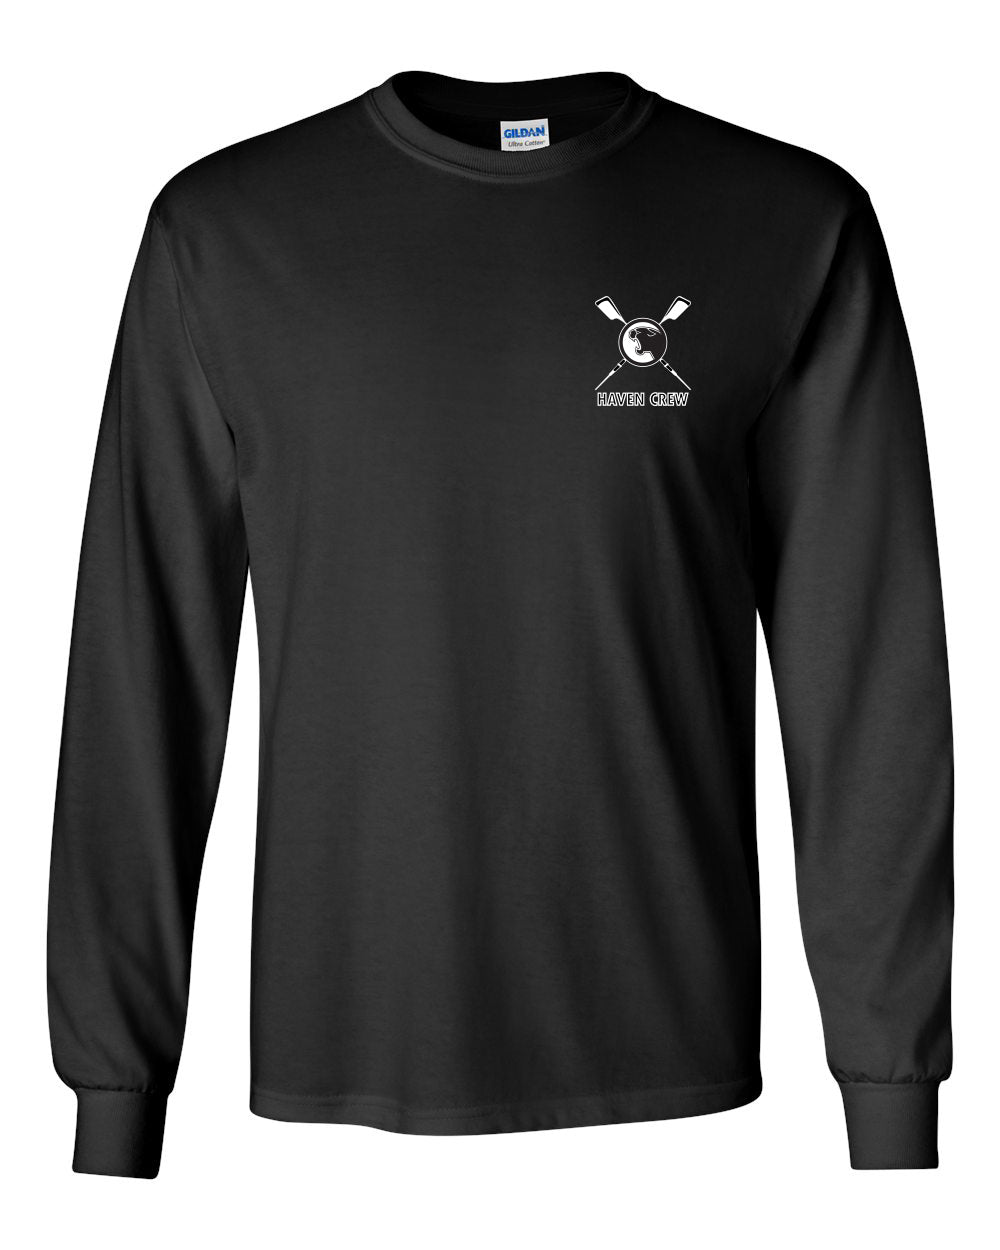 Custom Haven Crew Long Sleeve Cotton T-Shirt